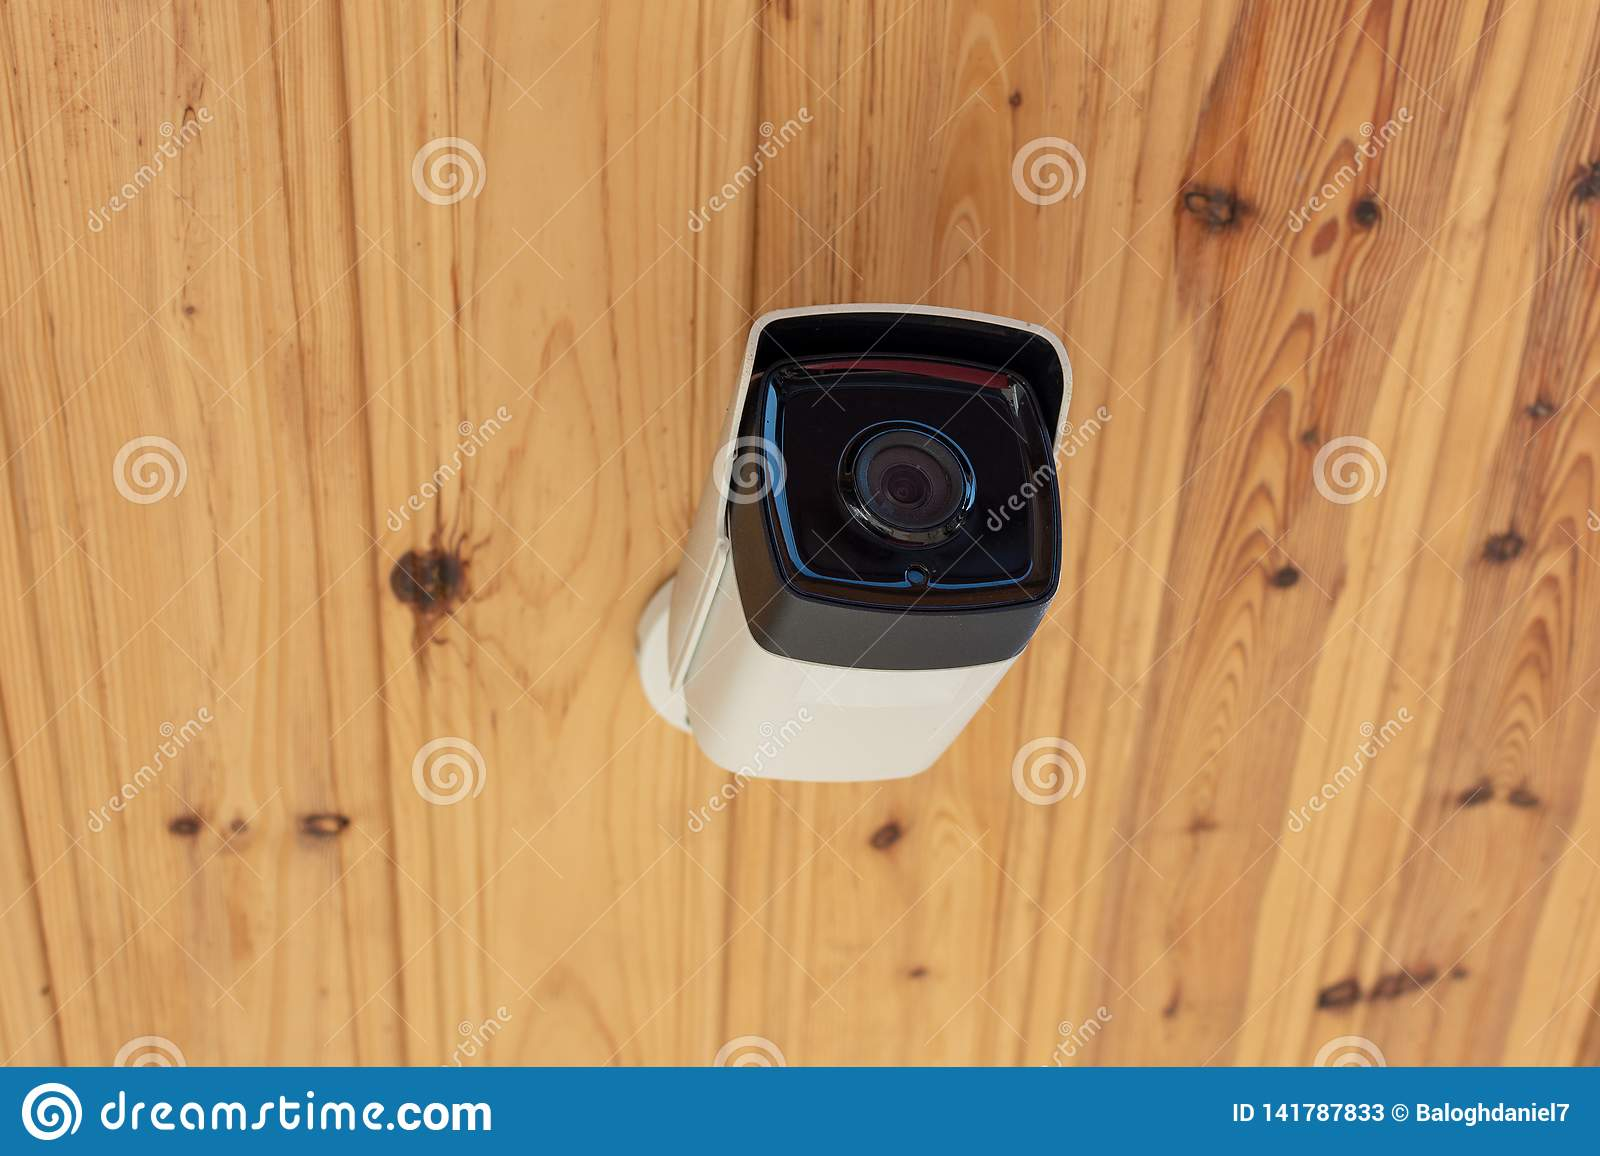 Modern Outdoor CCTV Camera On A Ceiling  Concept Of